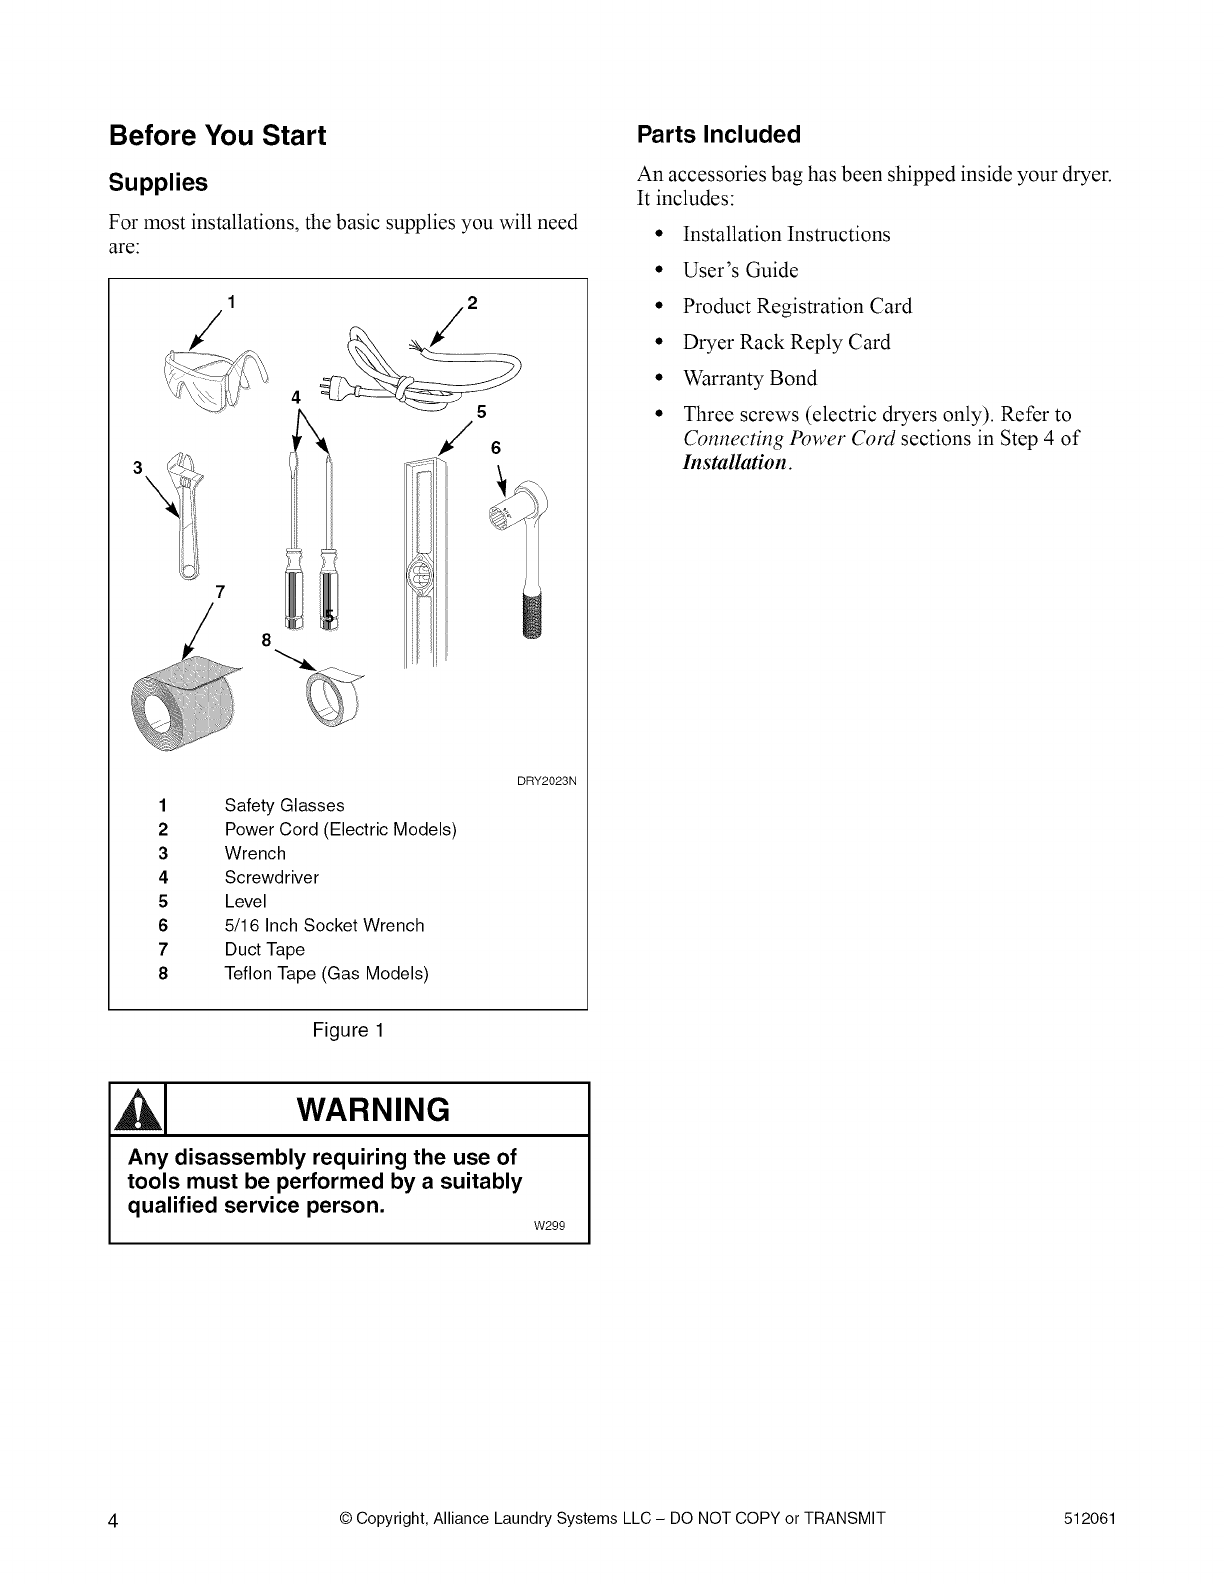 Speed Queen Aes20awf User Manual Dryers Manuals And Guides L0902475 Washer Wiring Diagram